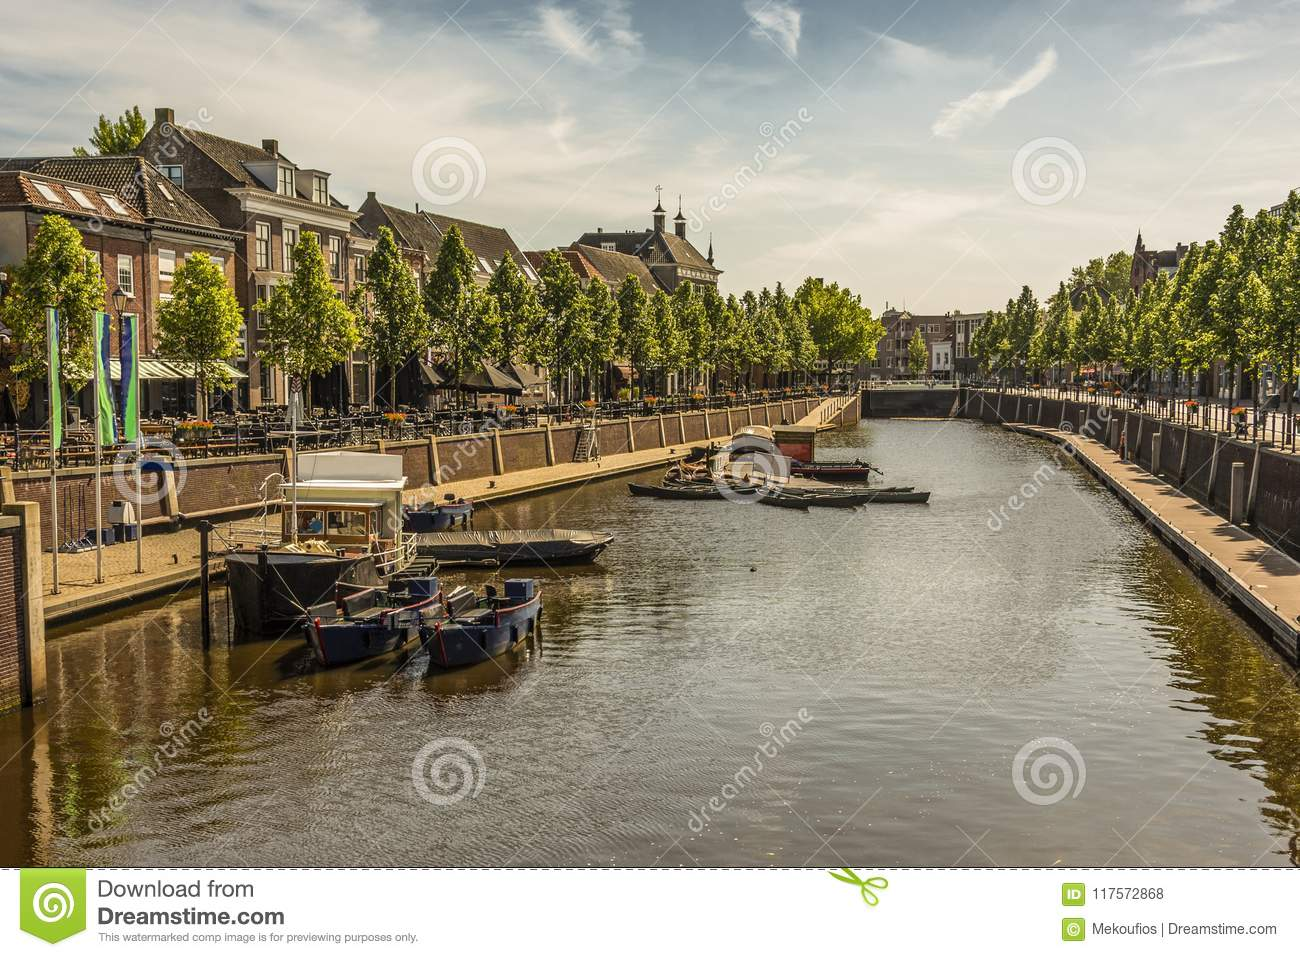 Canal and boats in the center of the city of breda. Netherlands